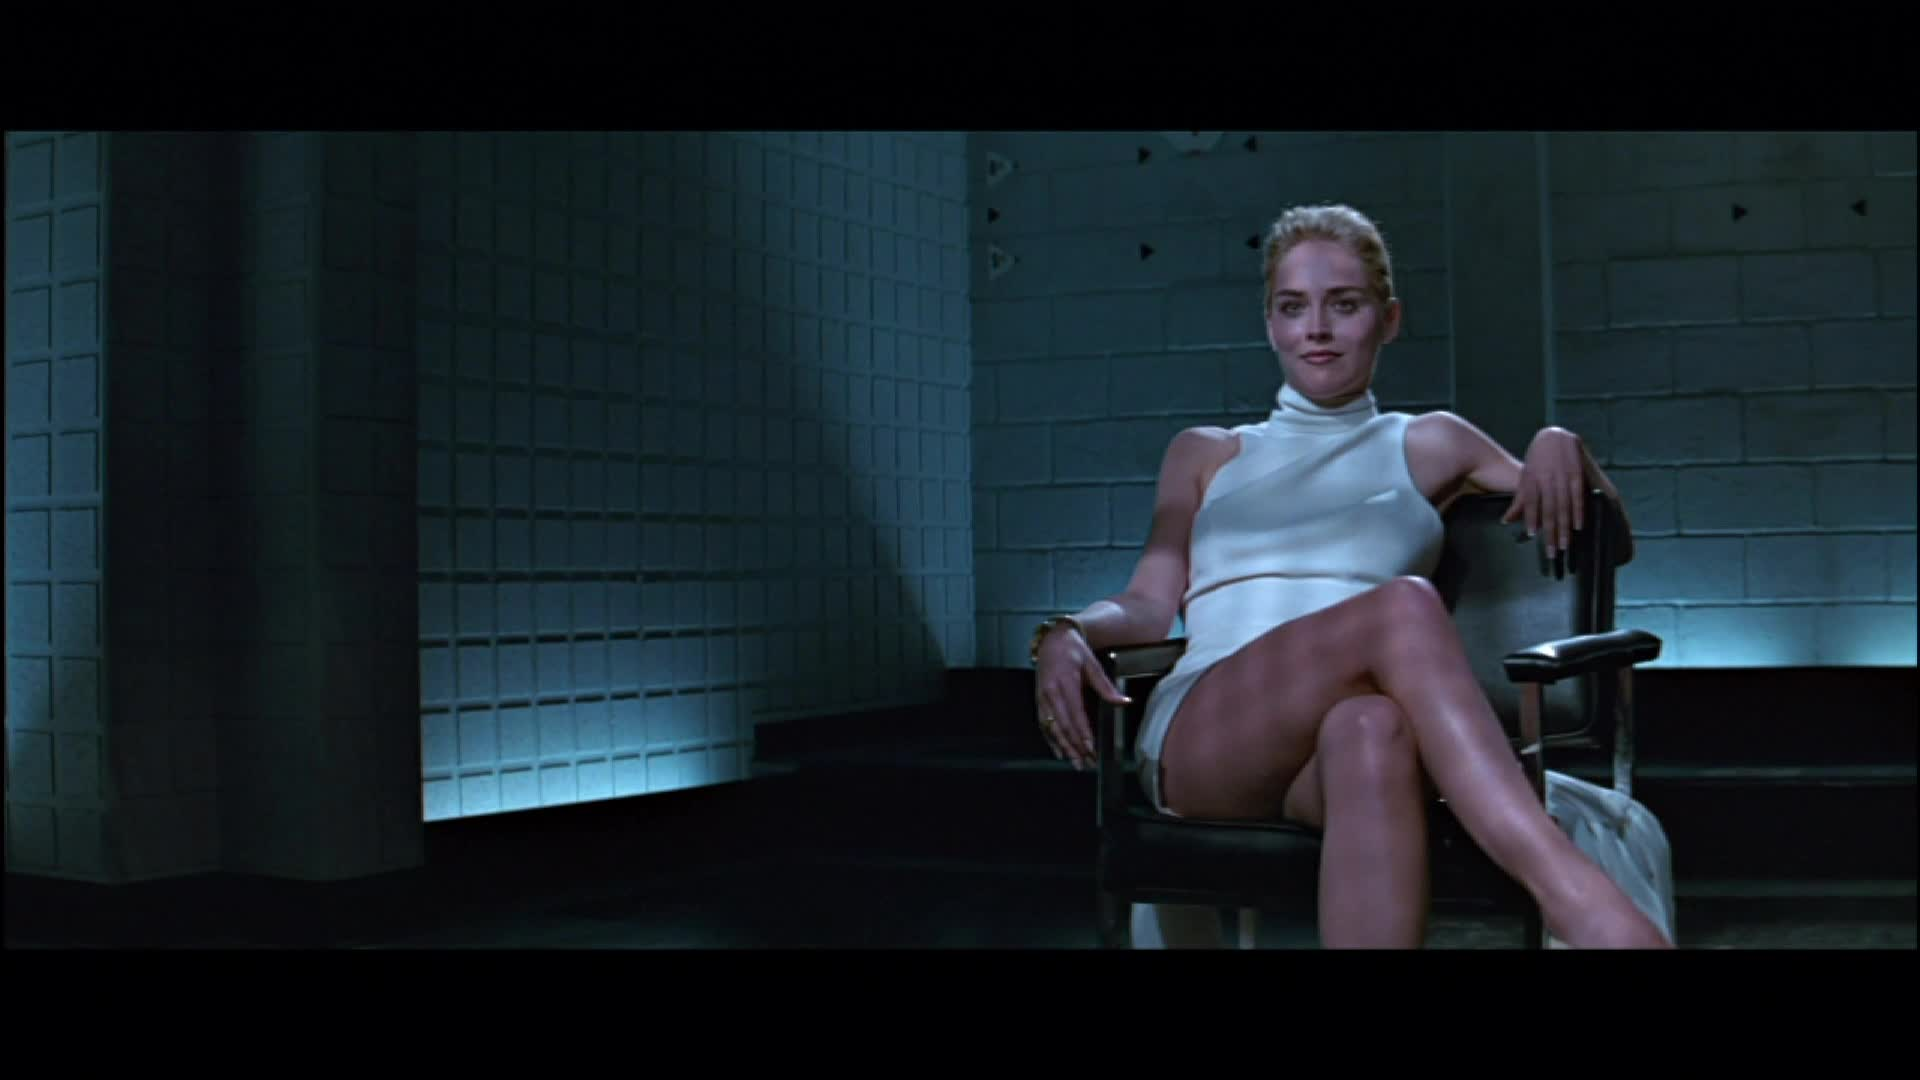 A-lister with most nude scenes - Sharon Stone